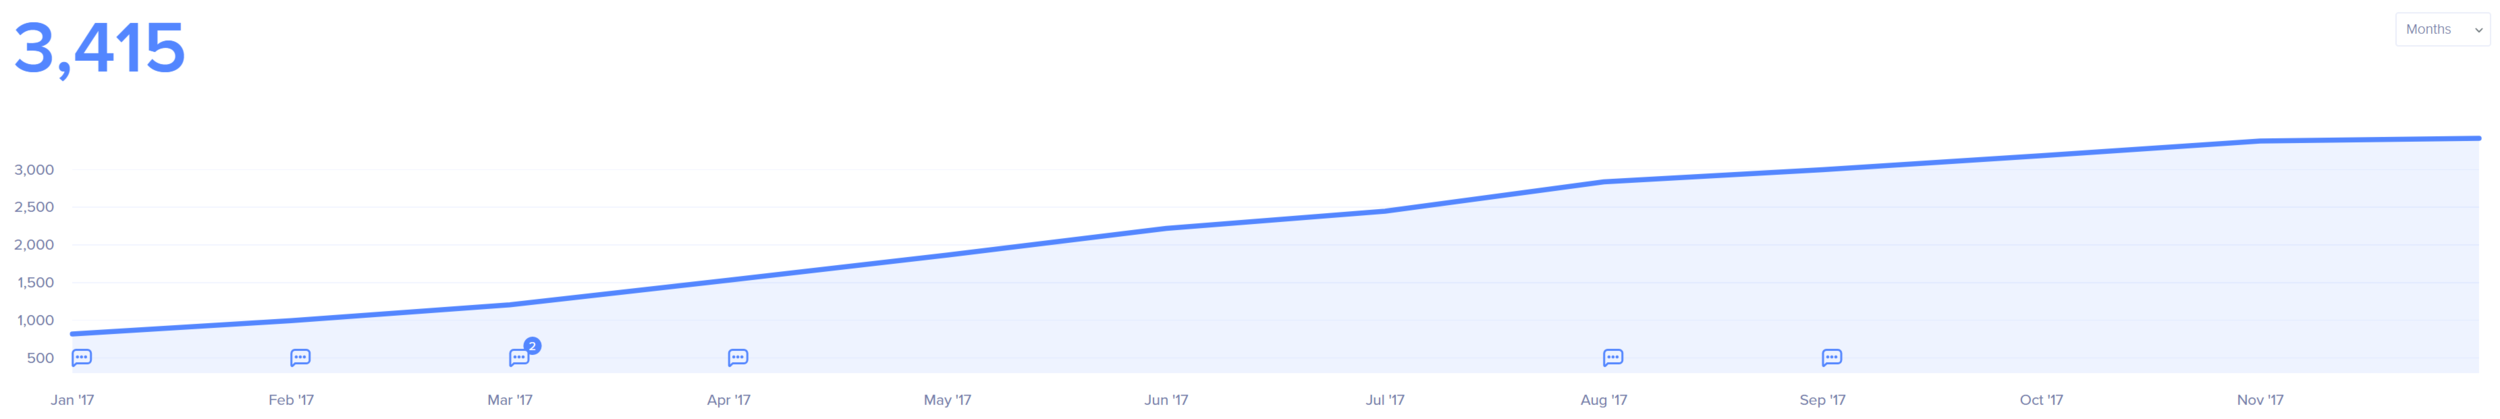 User Growth 2017.png